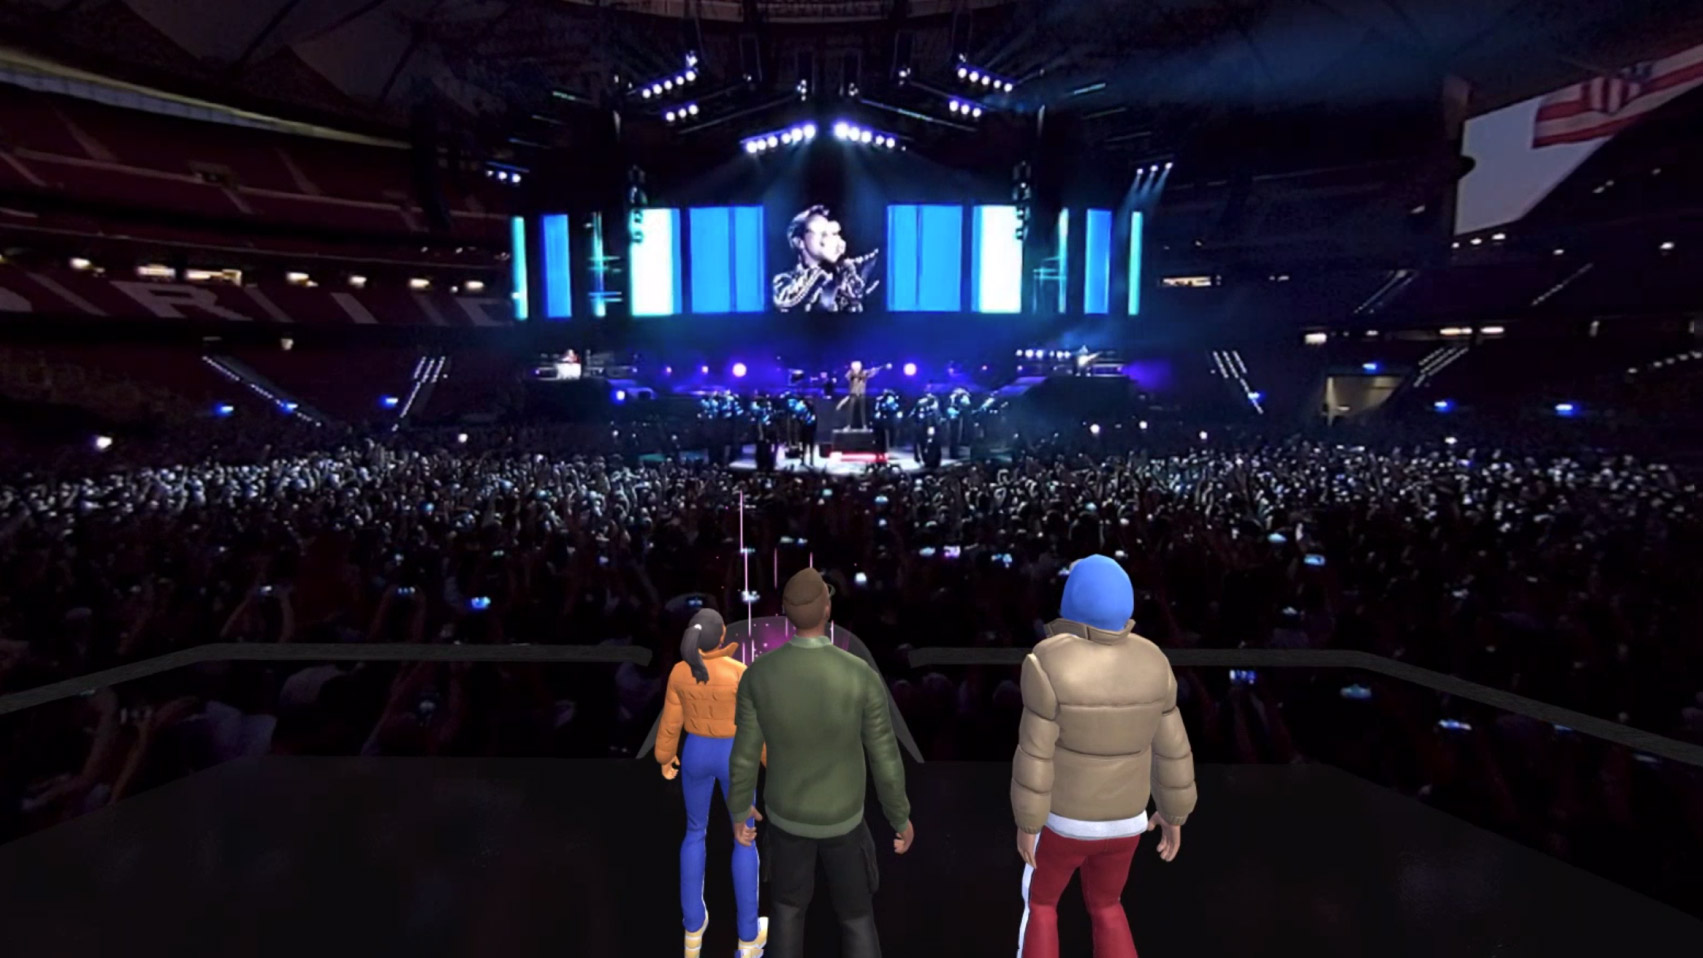 New Social VR Platform Debuts With an Immersive Muse Concert You Can Watch with Friends